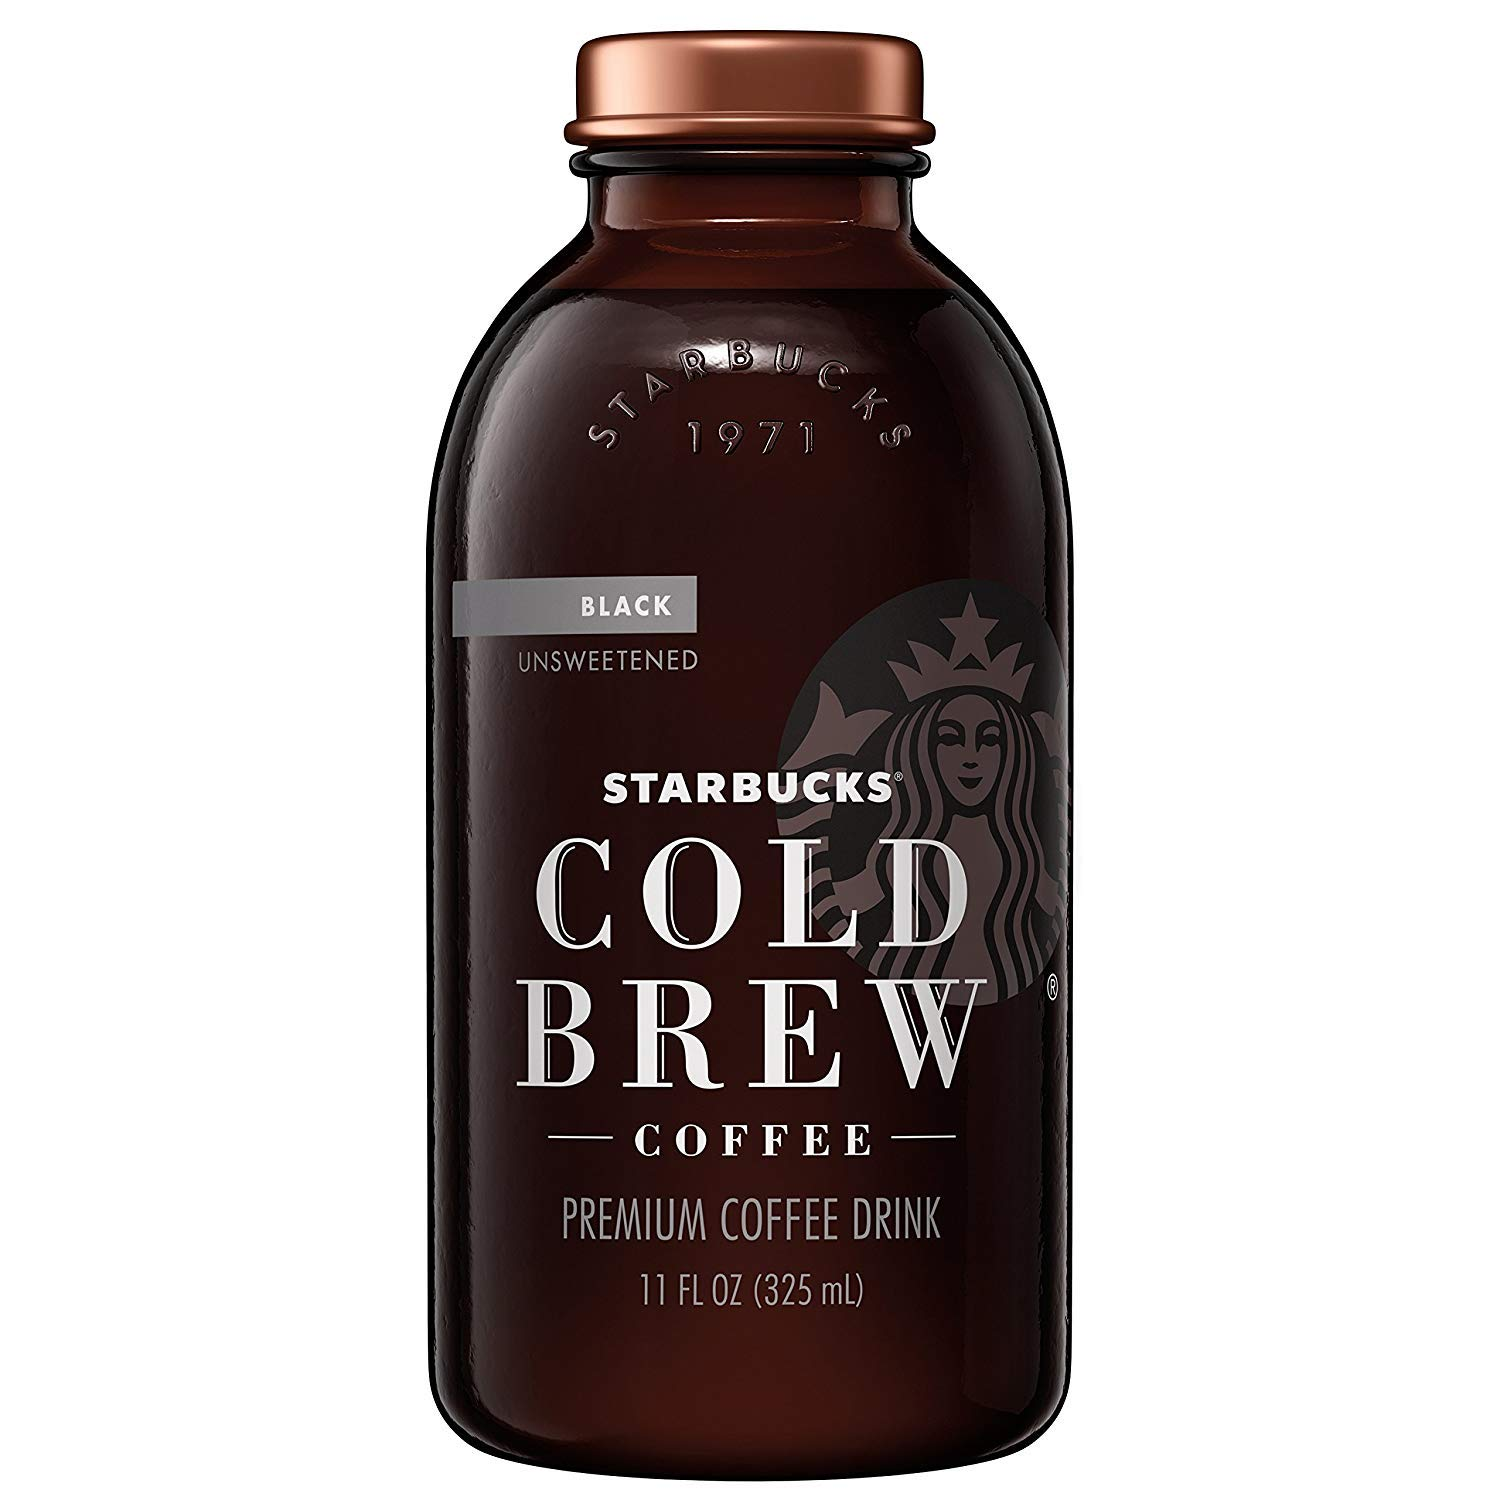 Starbuck's Cold Brew